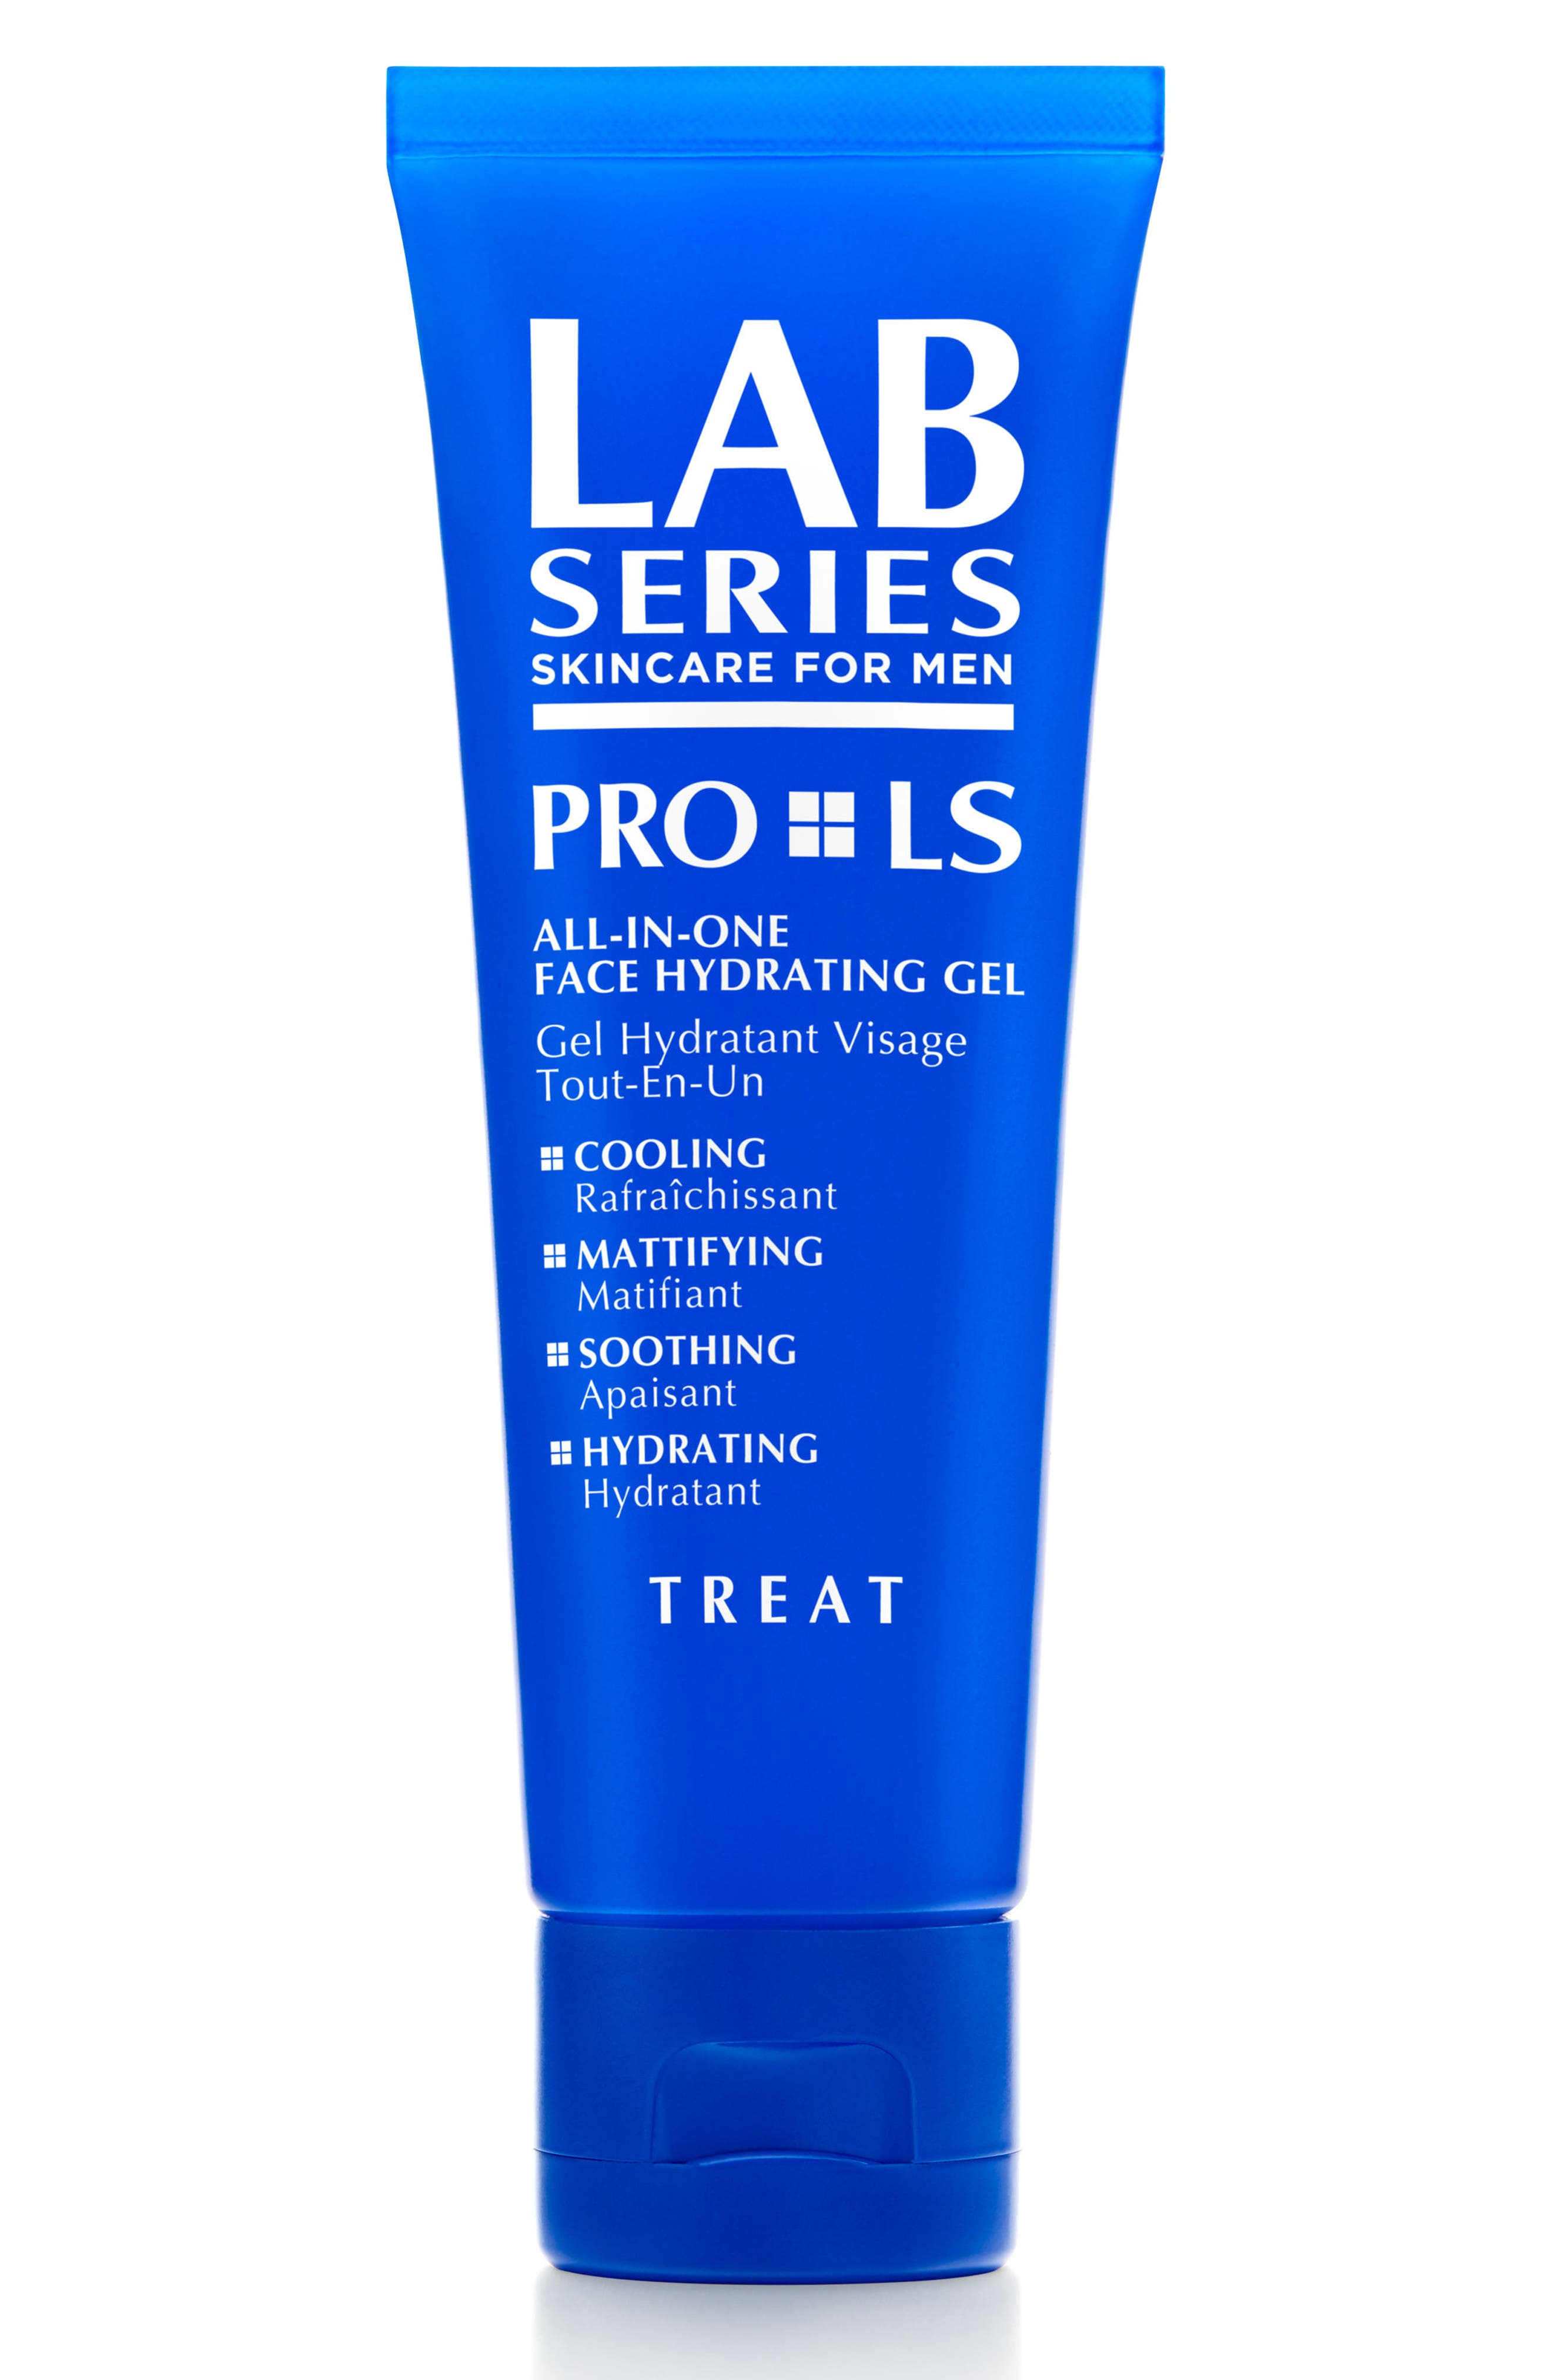 Main Image - Lab Series Skincare for Men PRO LS All-in-One Face Hydrating Gel